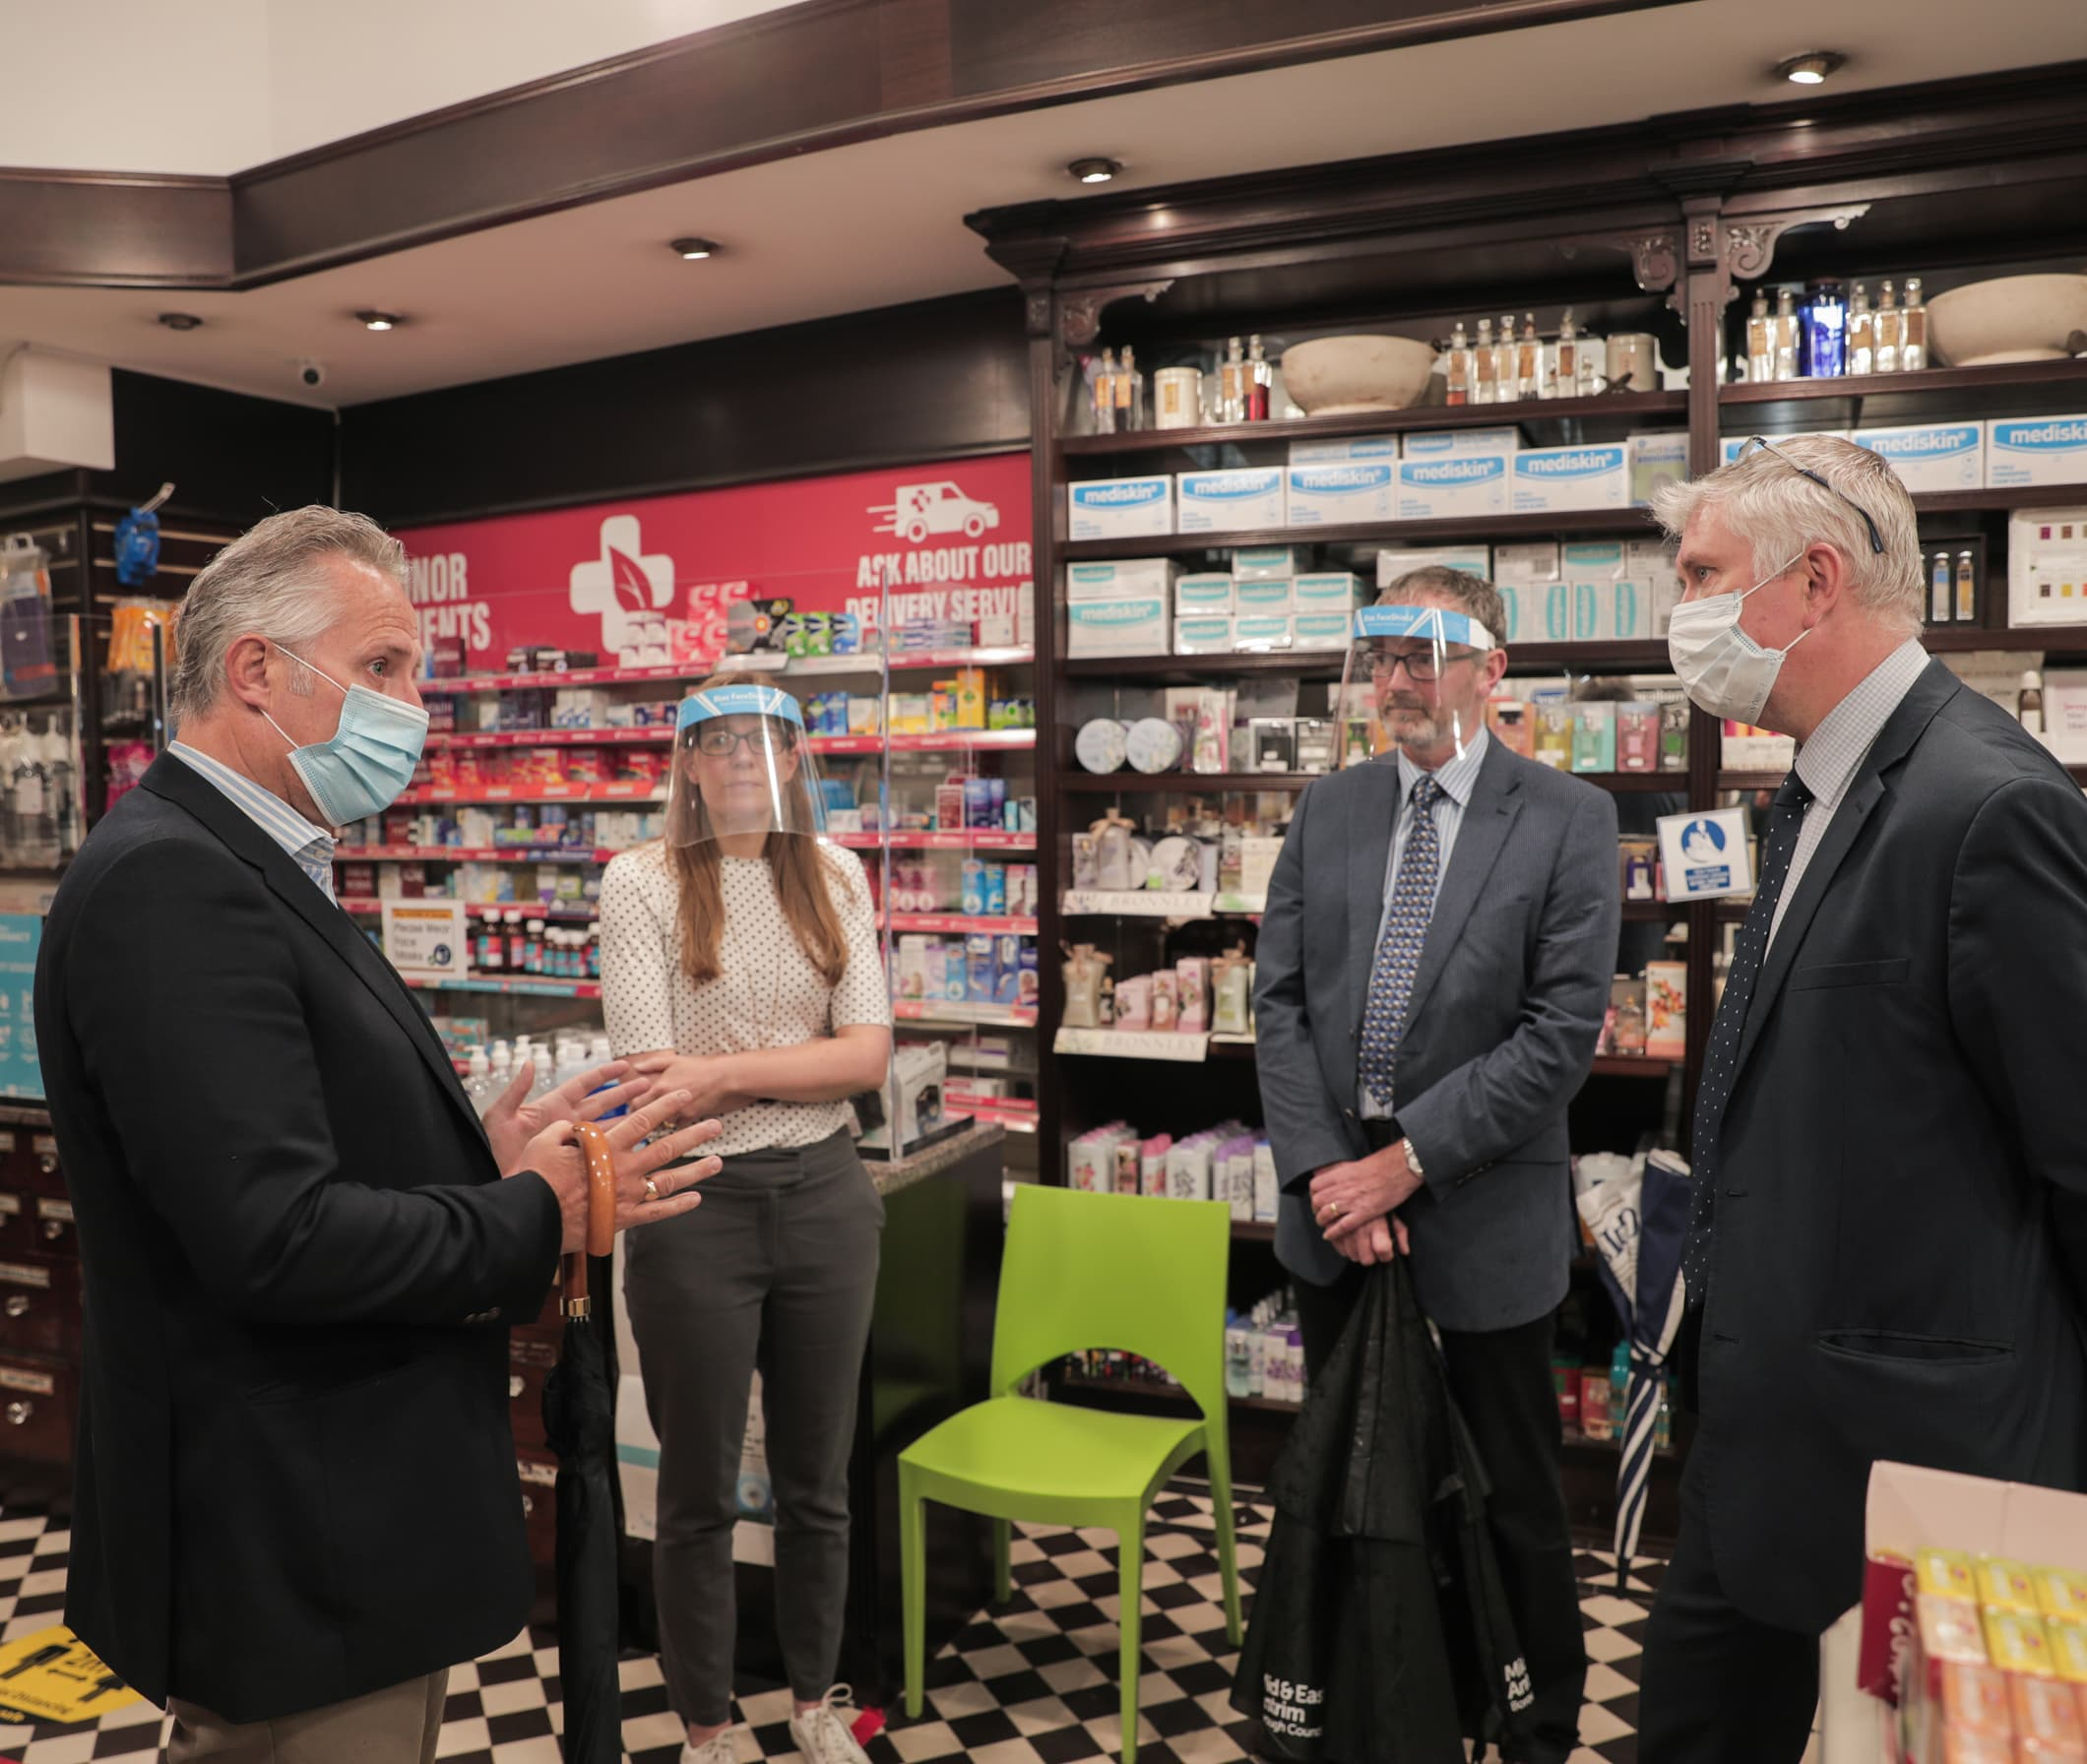 MP pays visit to local pharmacy to thank team for work during pandemic